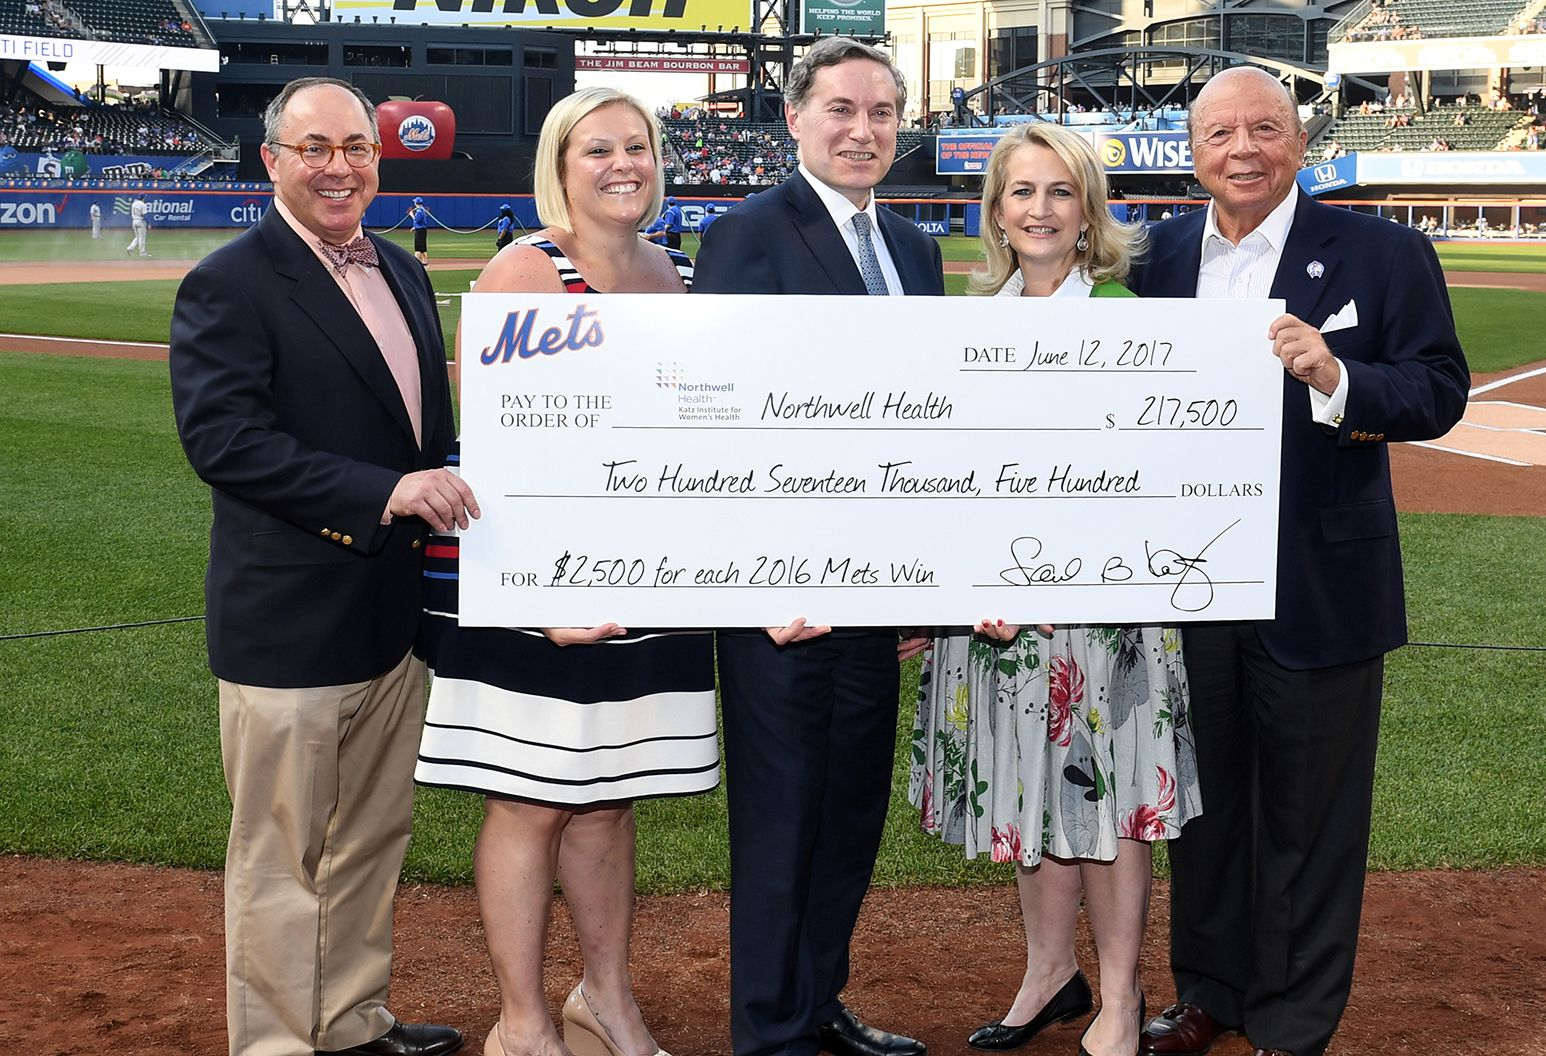 Dr. Andrew Menzin, Victoria Faustini,  Dr. Lyle Leipziger and Dr. Stacey E. Rosen receiving a check from Saul Katz at Citi Field, home of the New York Mets.